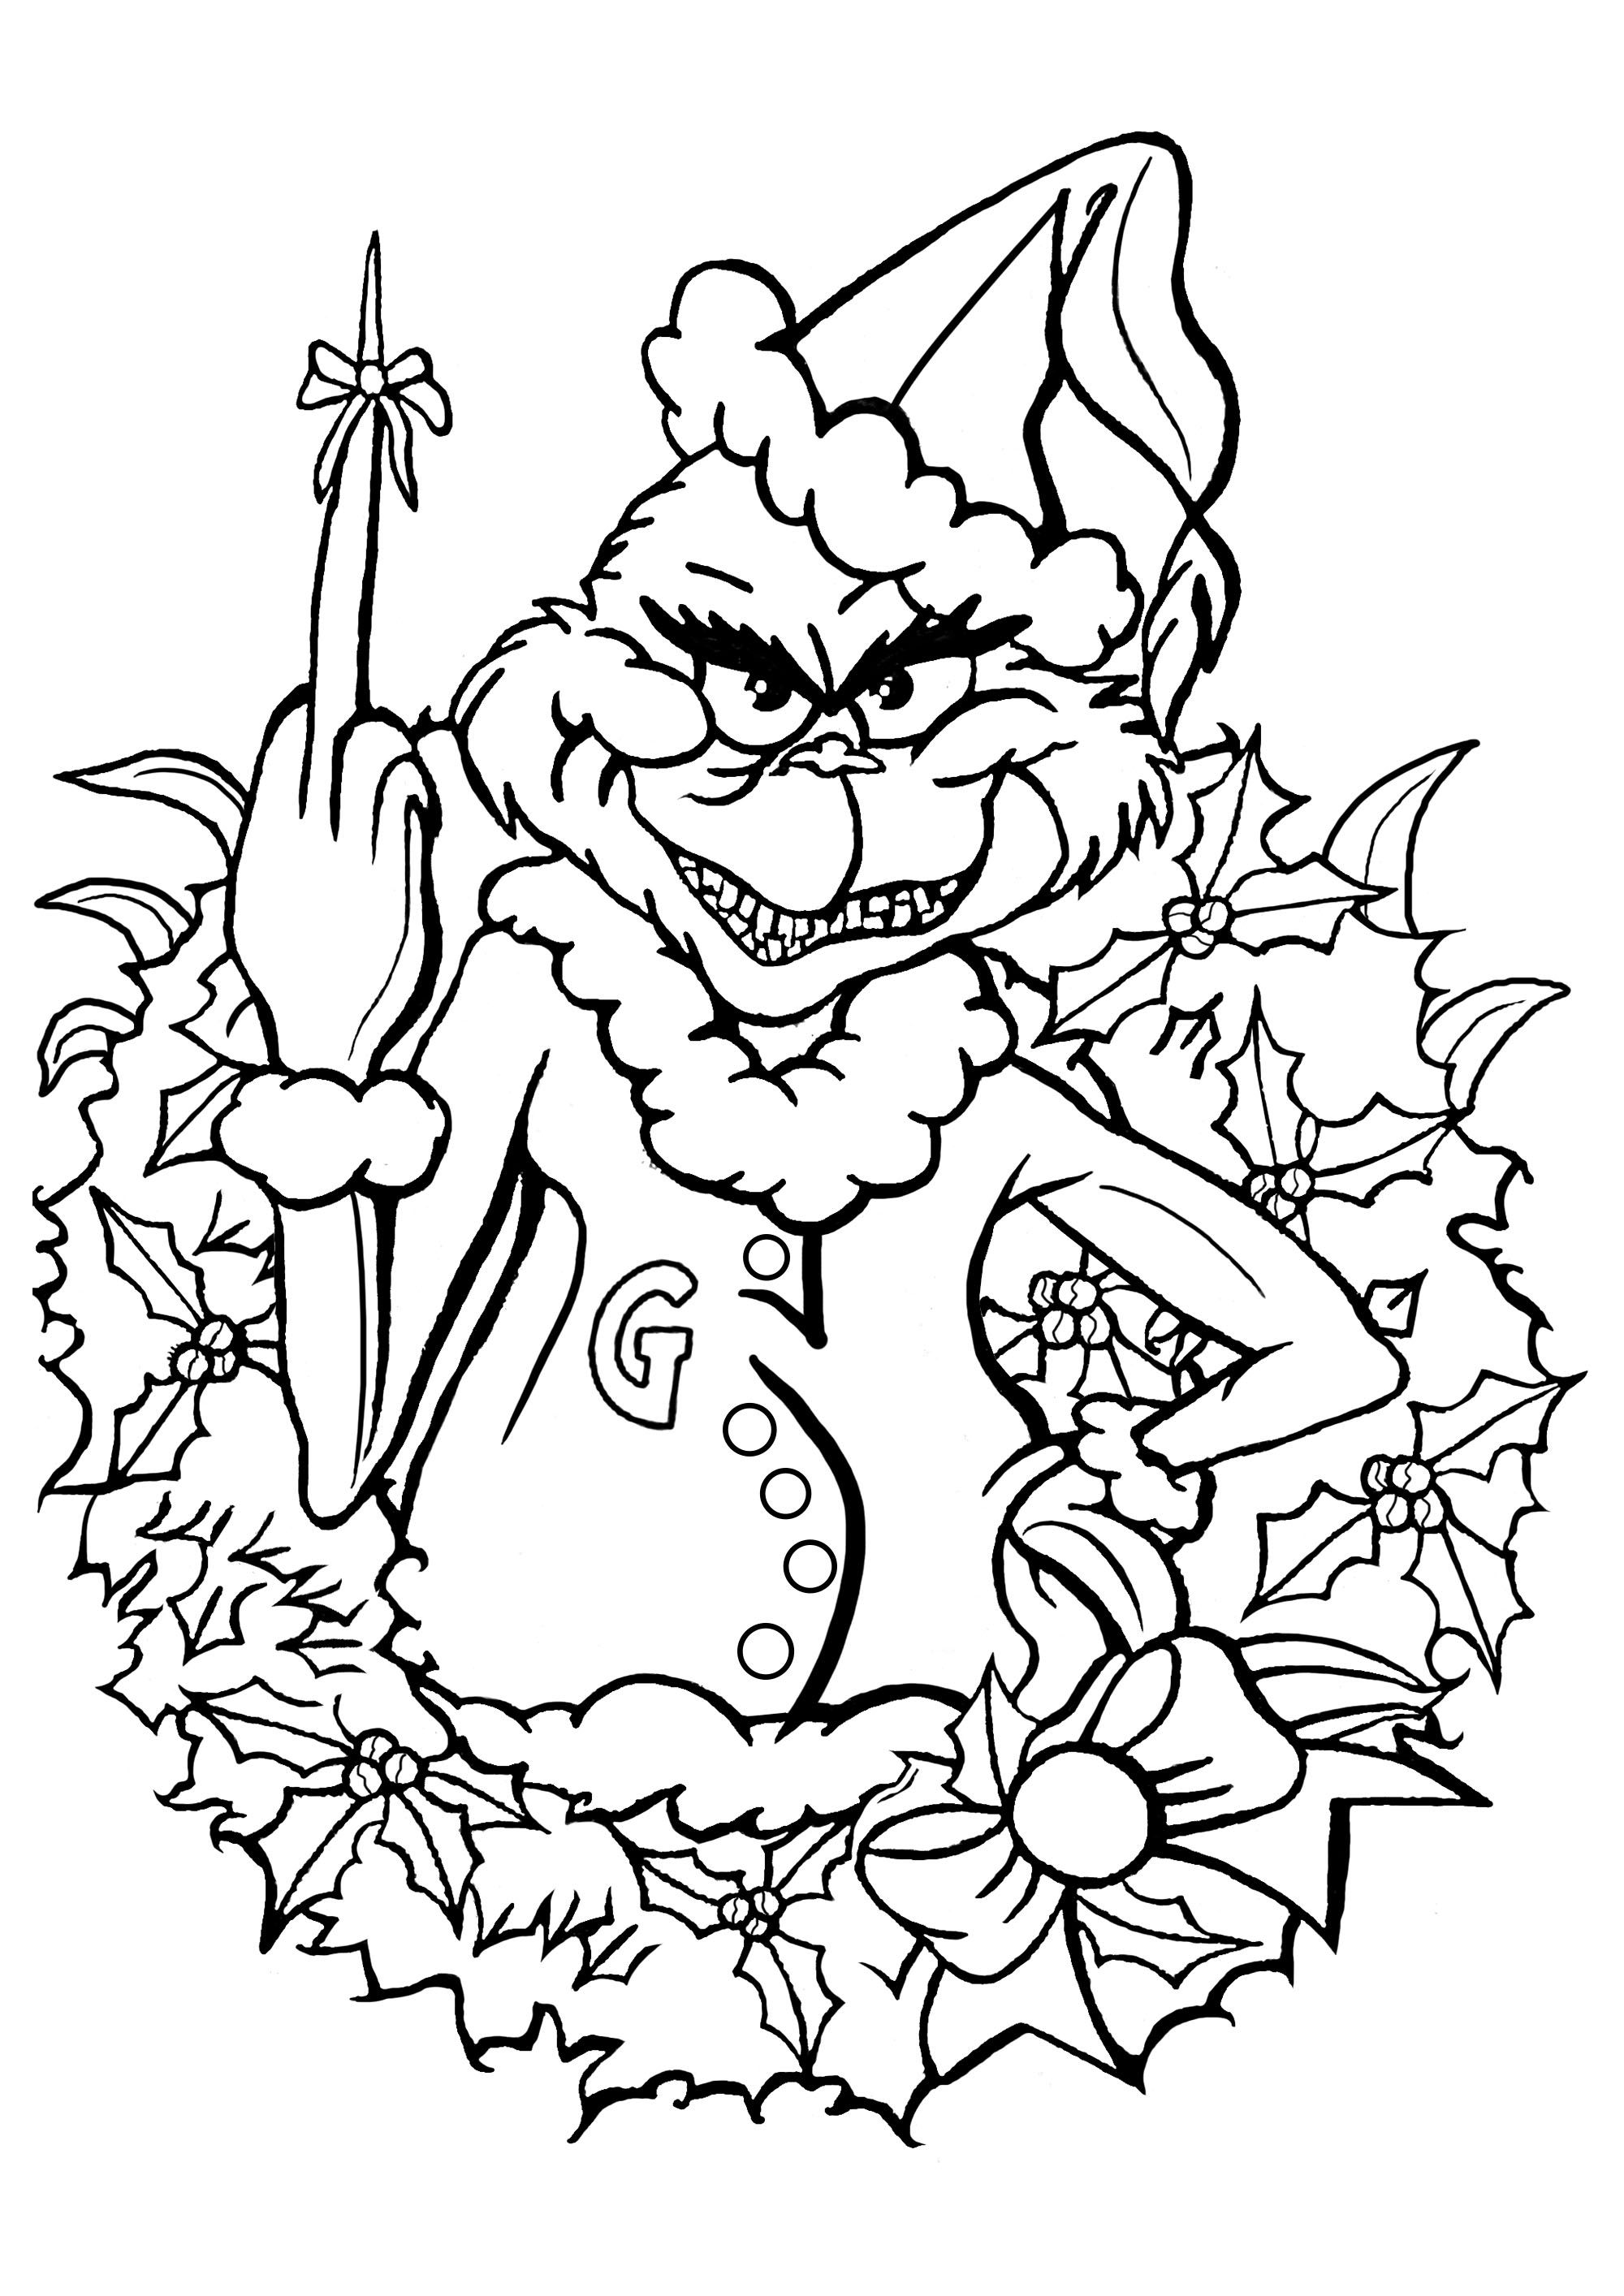 The Grinch Celebrate Christmas With The Grinch He Has A Small Gift For You The Grinch In 2020 Grinch Coloring Pages Shape Coloring Pages Detailed Coloring Pages